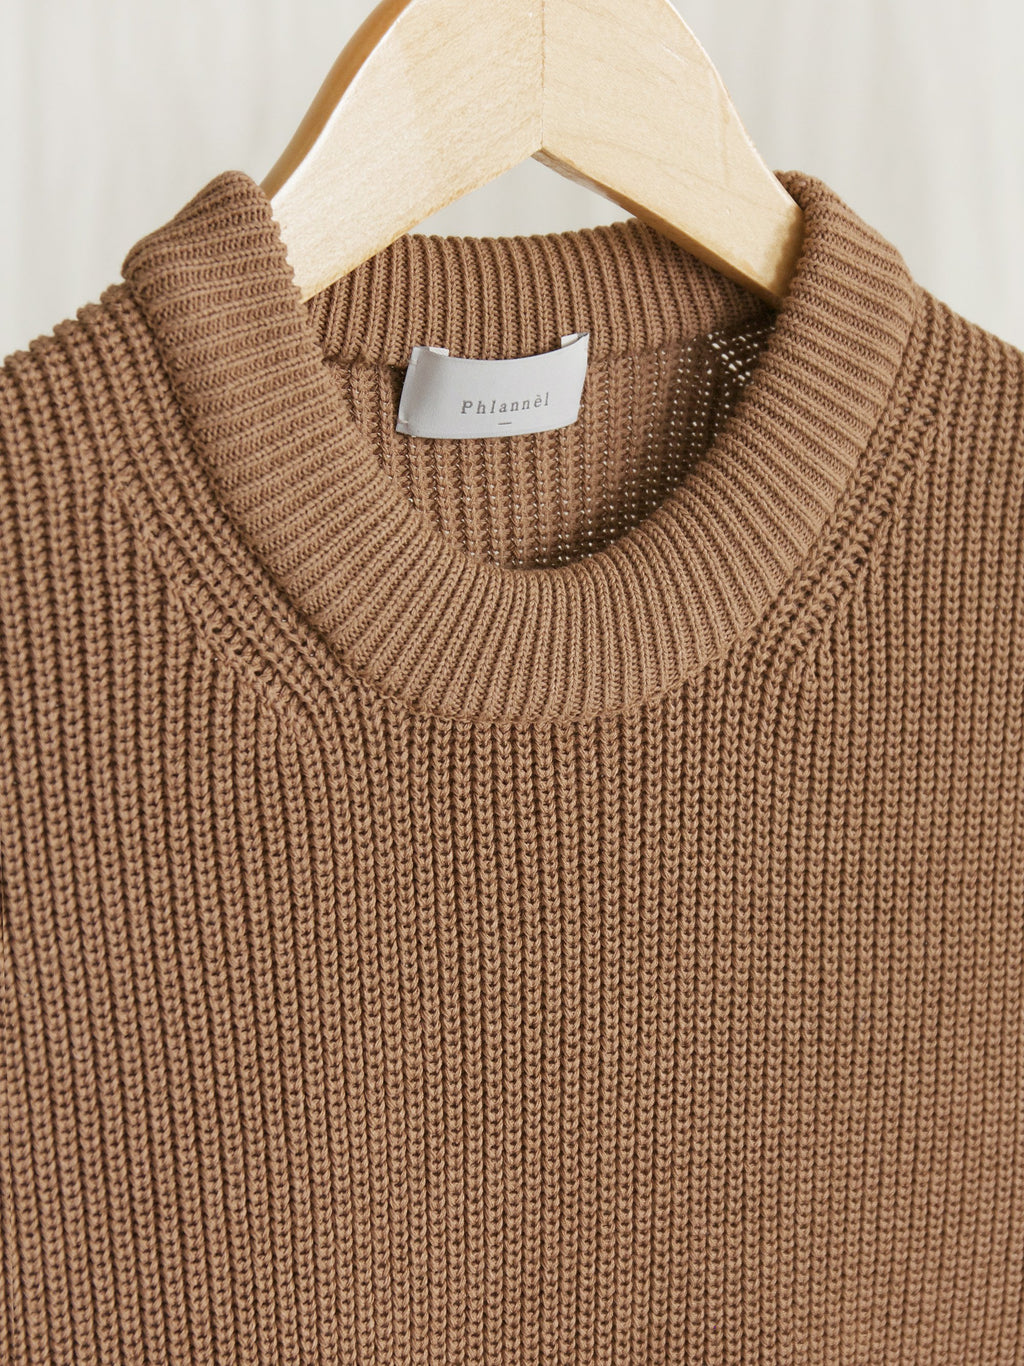 Namu Shop - Phlannel Washi/Silk Crew Neck Knit Vest - Almond